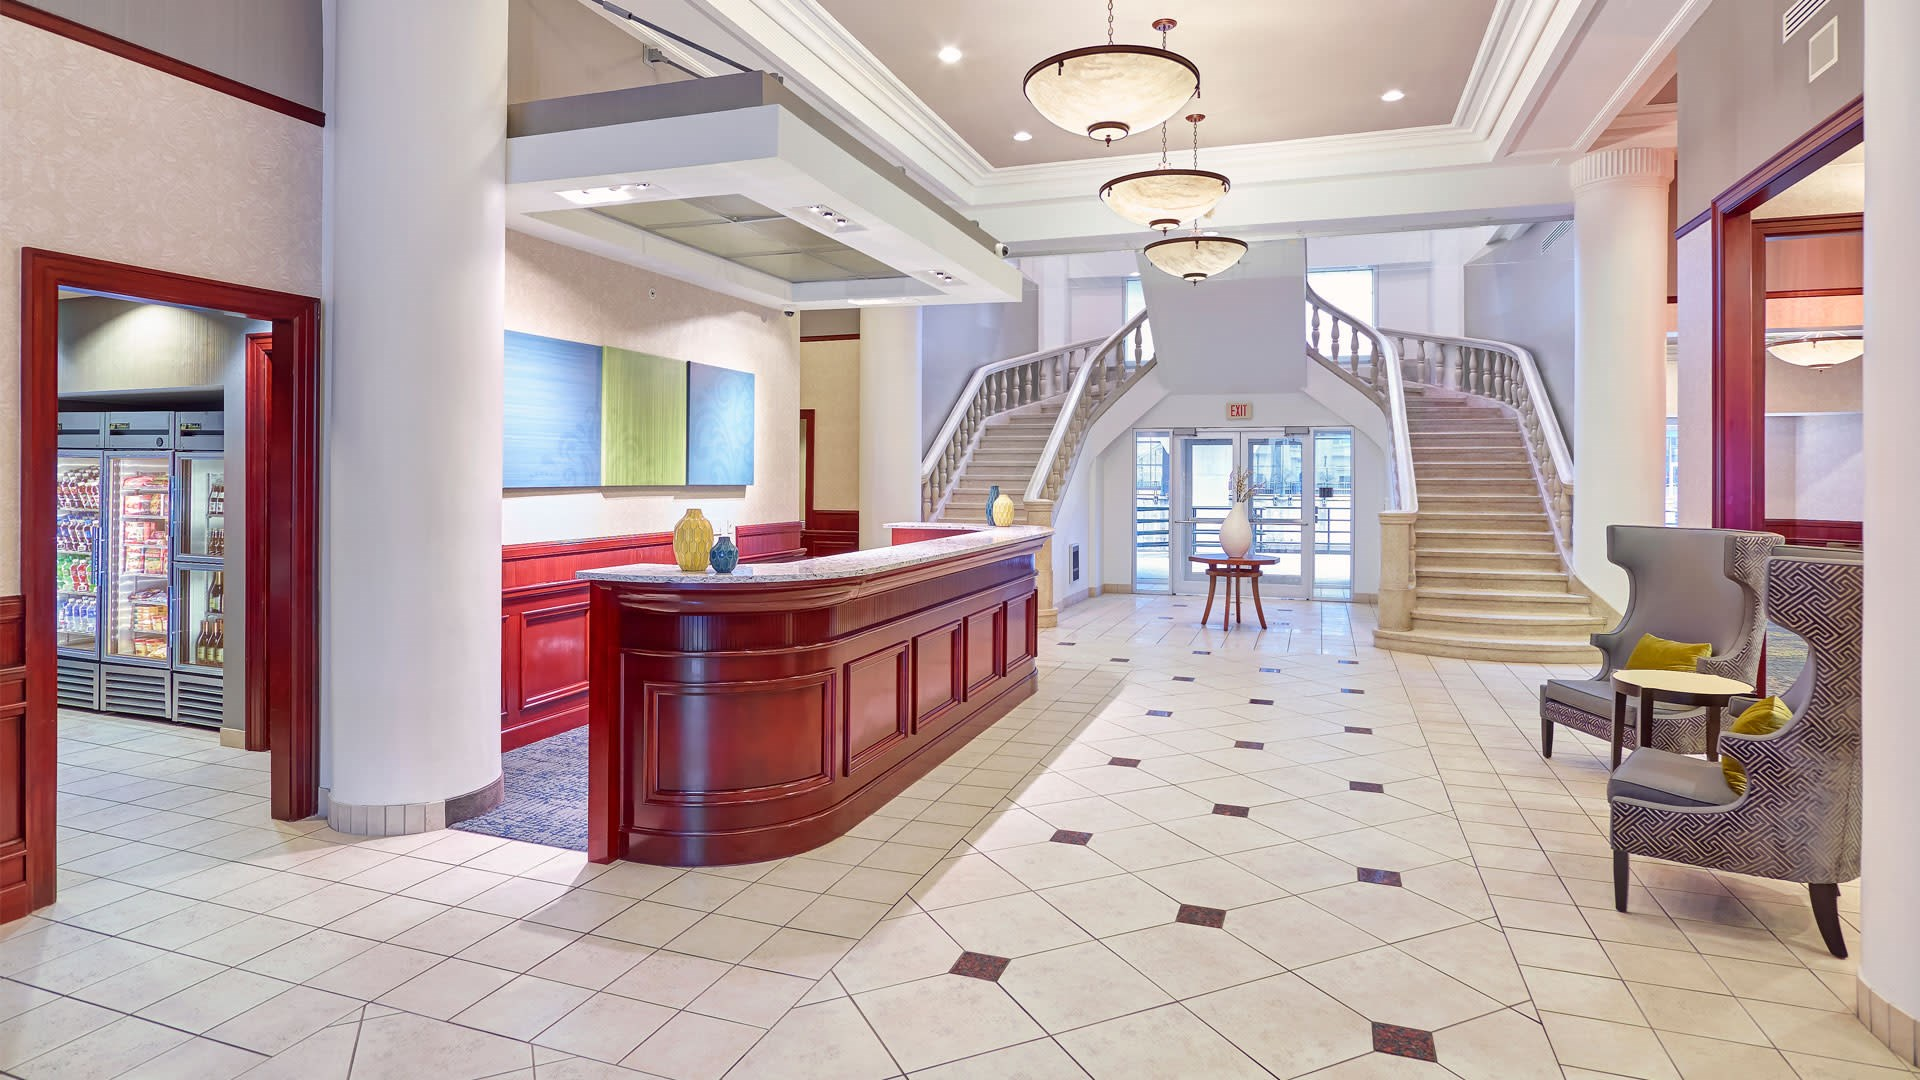 Lobby, Front Desk, Market, and Grand Staircase